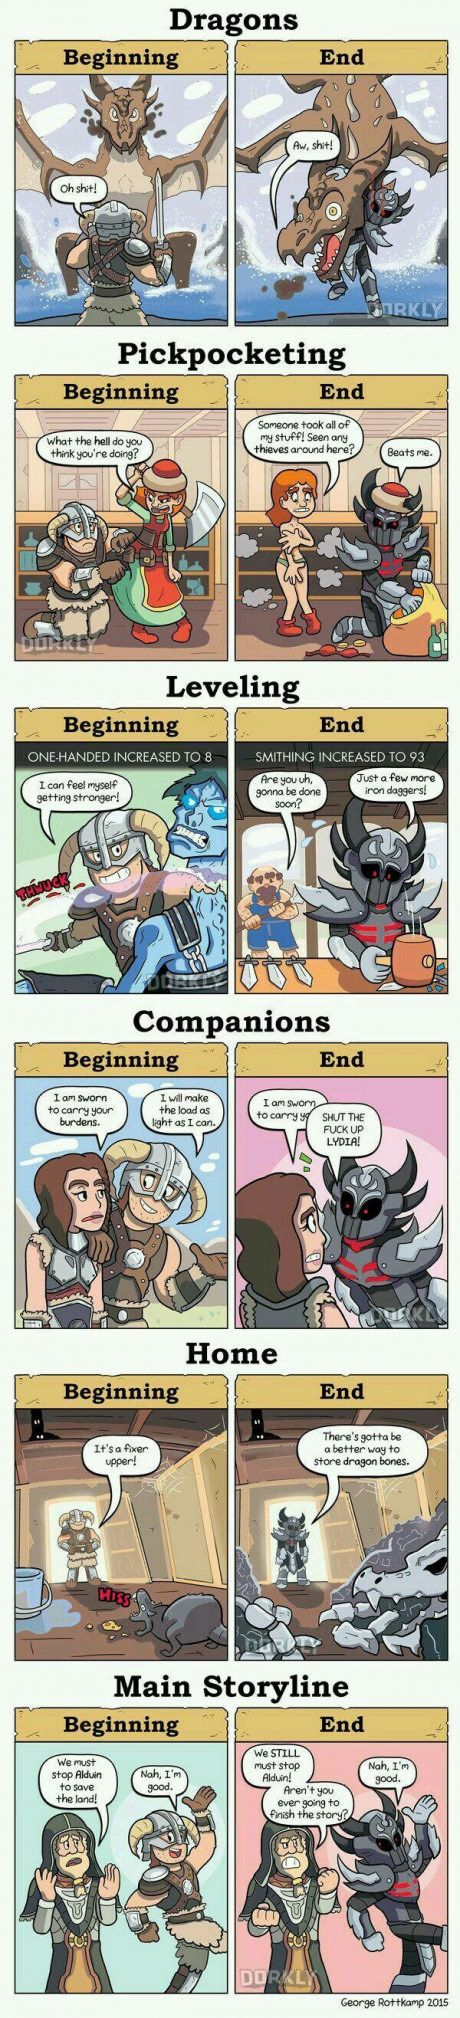 Skyrim: Beginning and End                                                                                                                                                     More